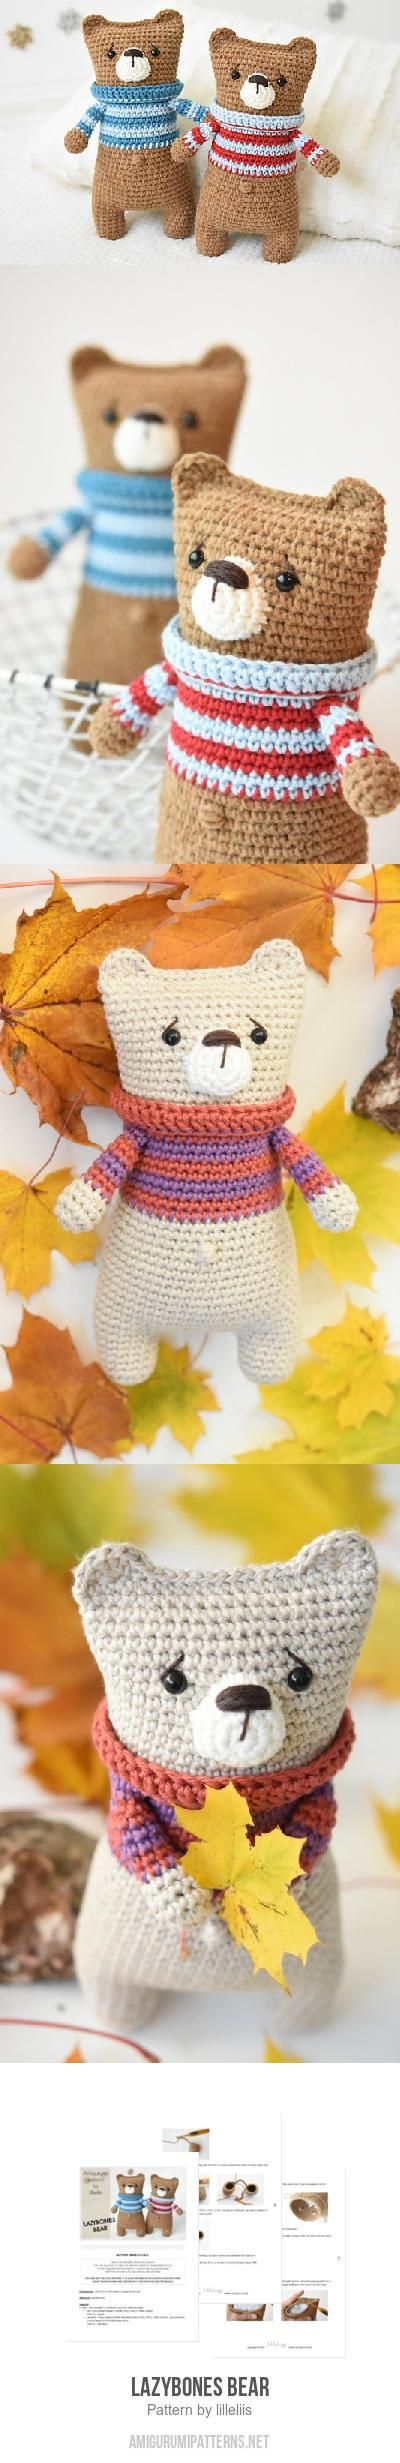 How cute (and easy) are these bears?!?!?! Reminds of the new rag doll style of toys coming out lately. Lazybones bear amigurumi pattern